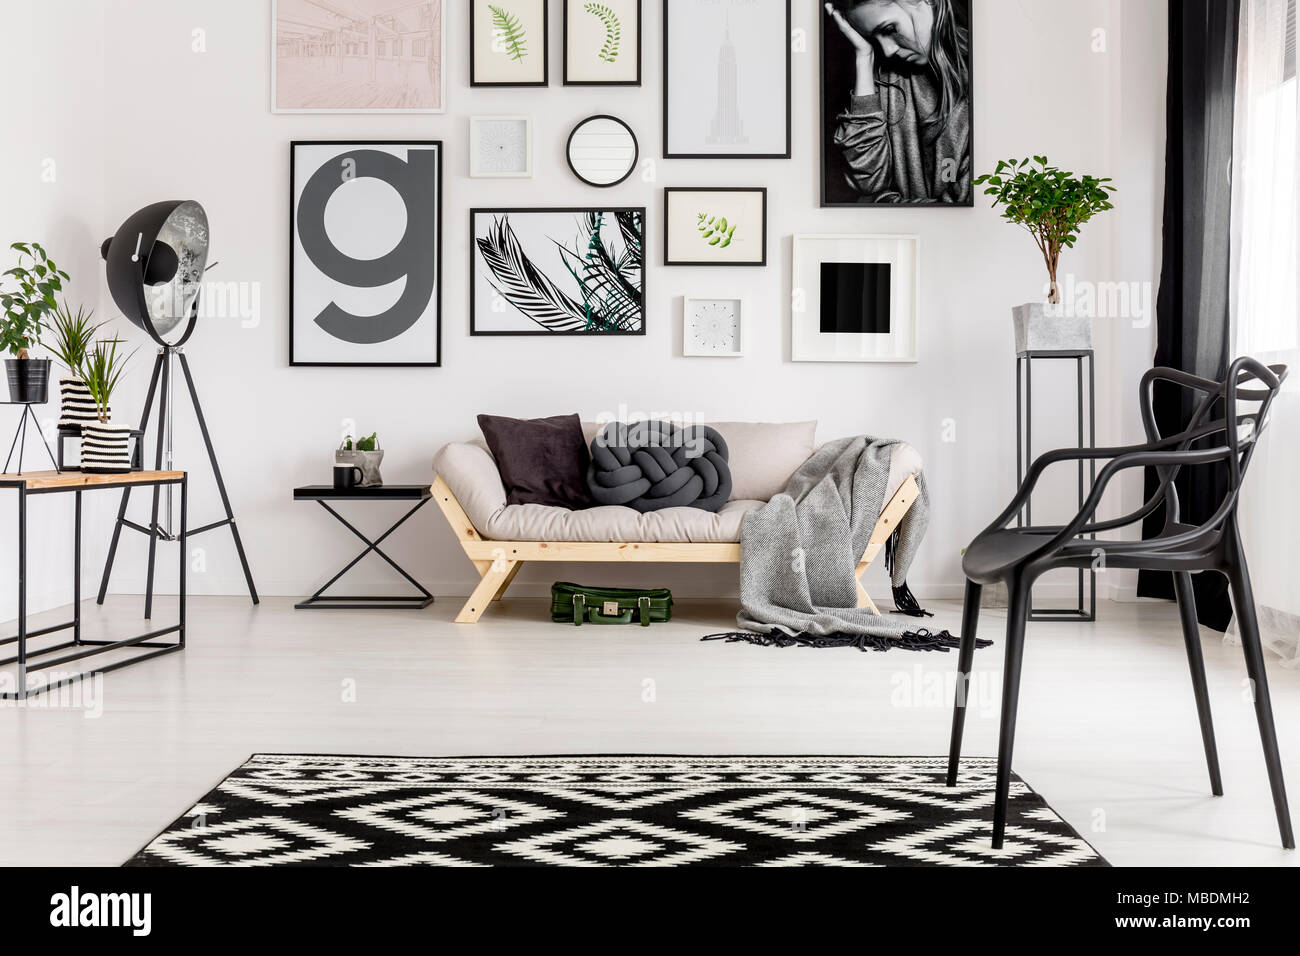 Comfy sofa with pillows, blanket, geometrical rug and posters in an artistic living room interior - Stock Image